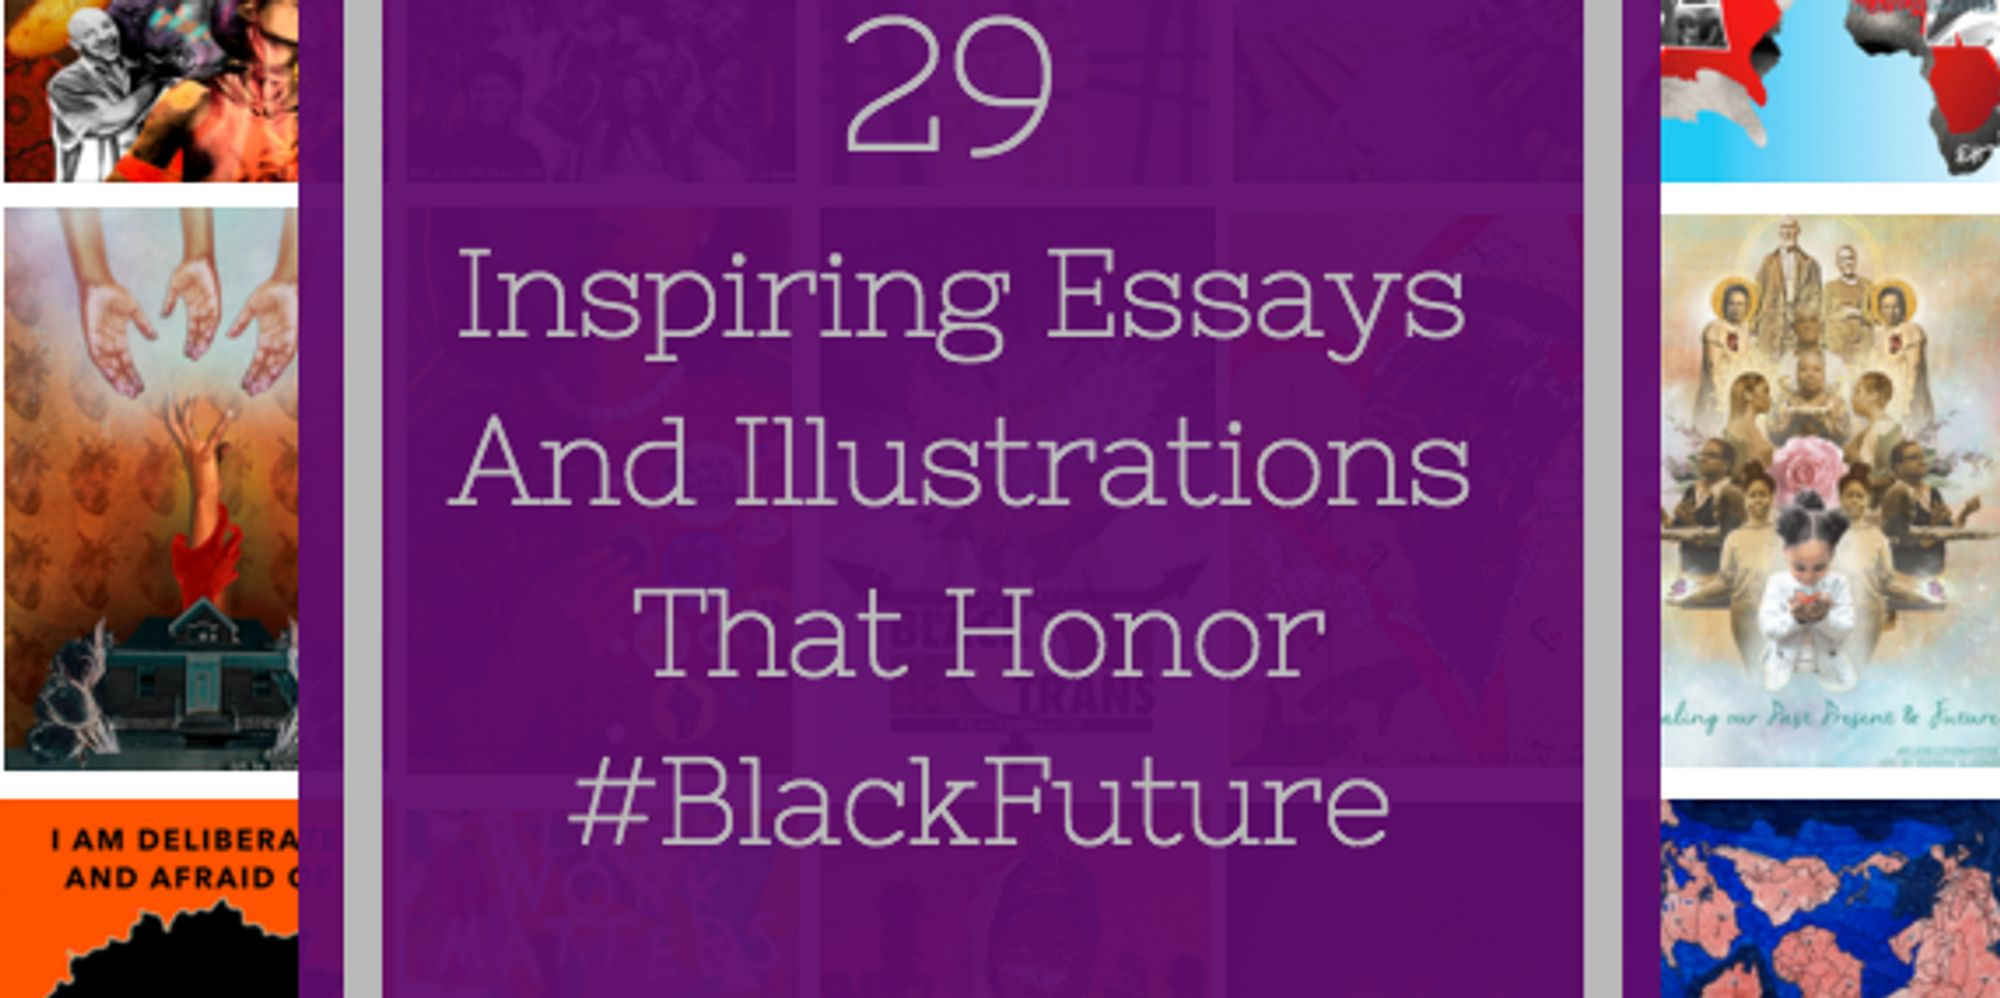 black future month pictures videos breaking news 29 inspiring essays and illustrations that explore the state of black future